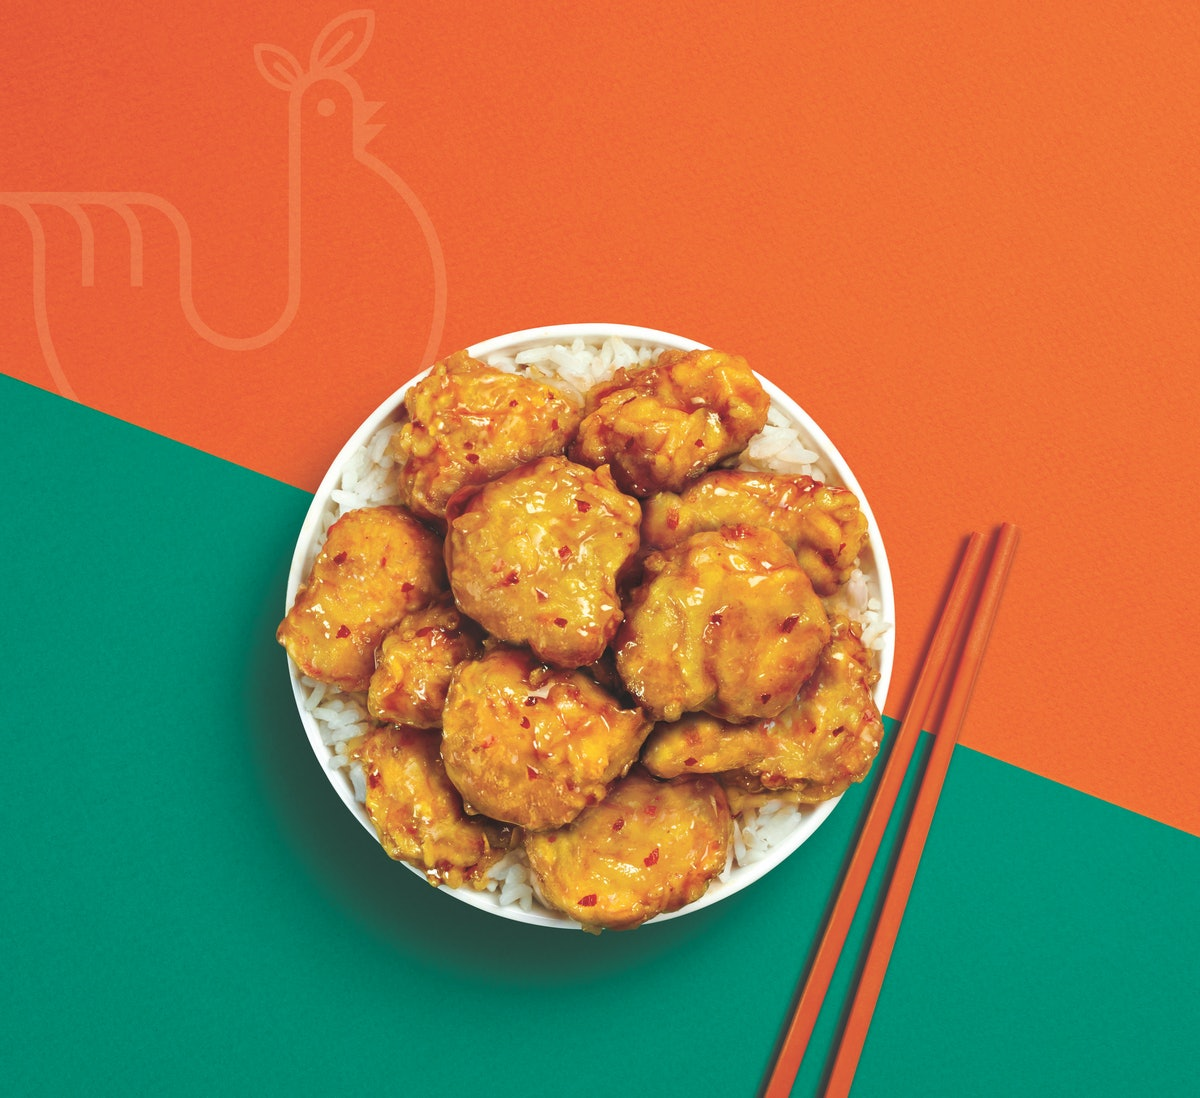 Here's where you can get Panda Express' Beyond Orange Chicken once the test launches.